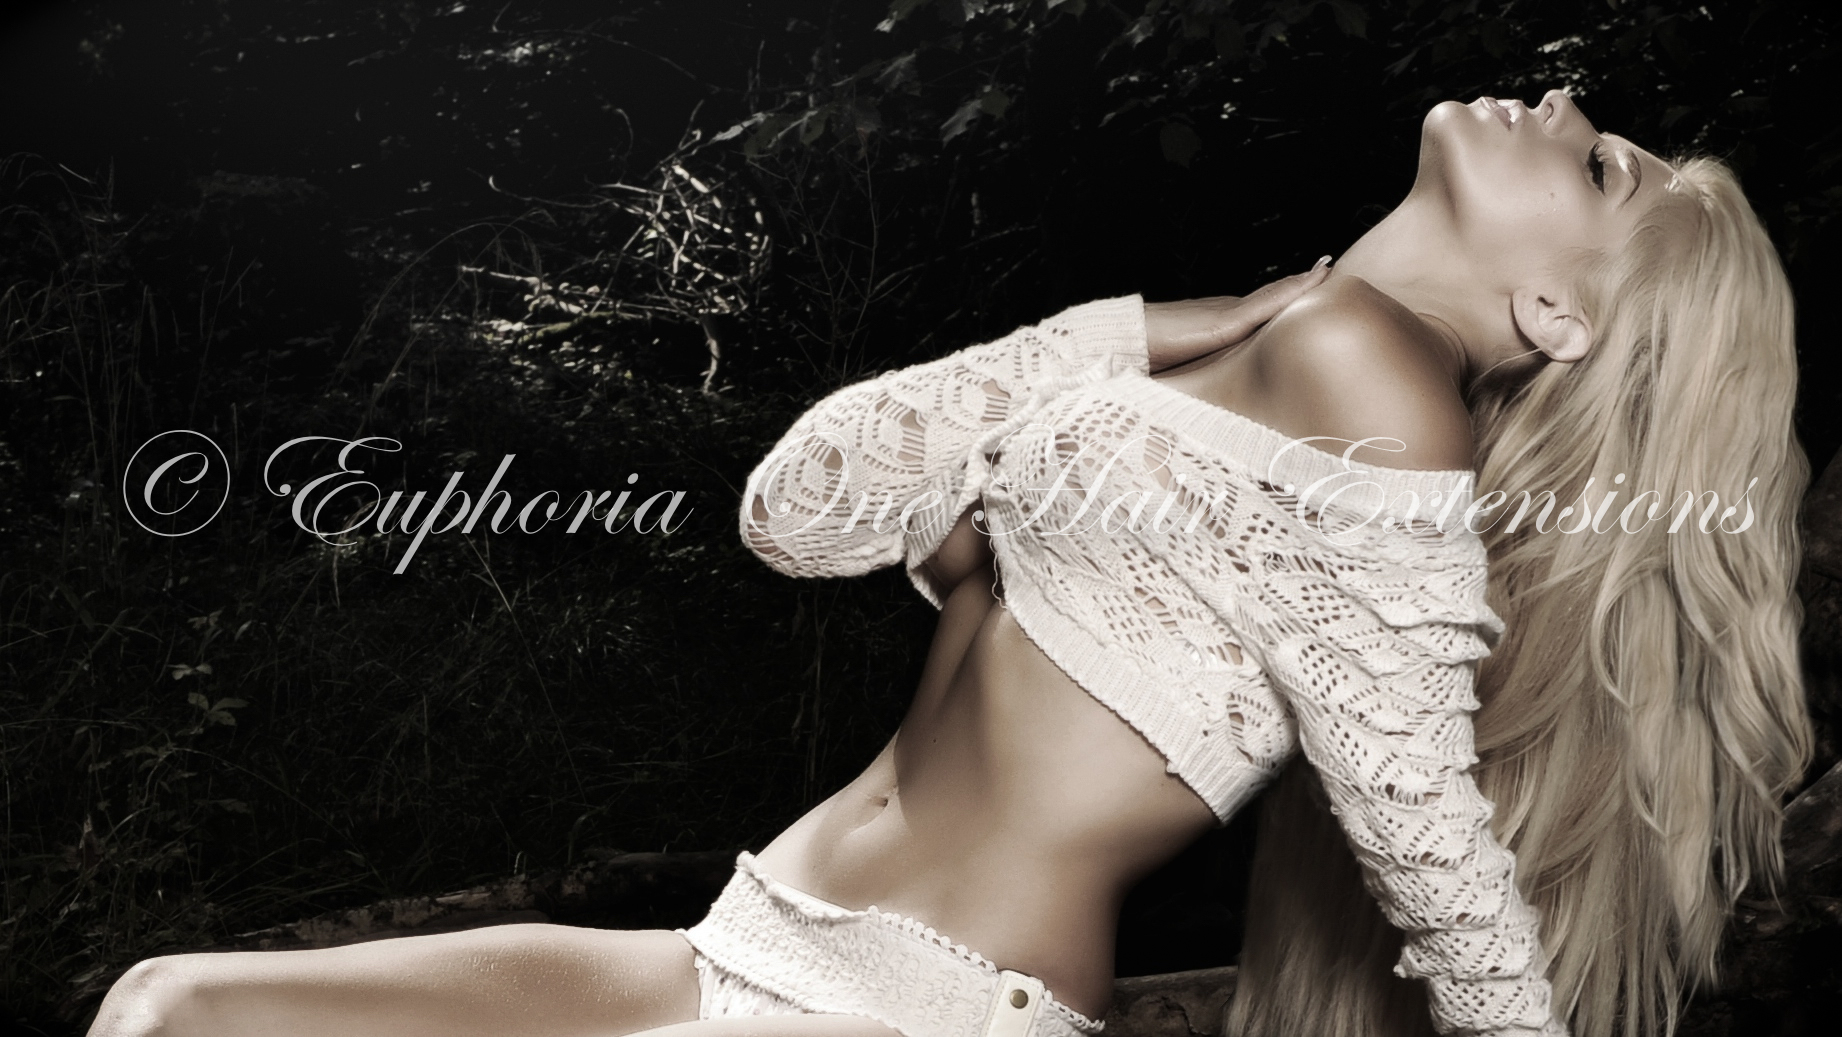 euphoria-one-website-main-1imagejpgeuphoria.jpg